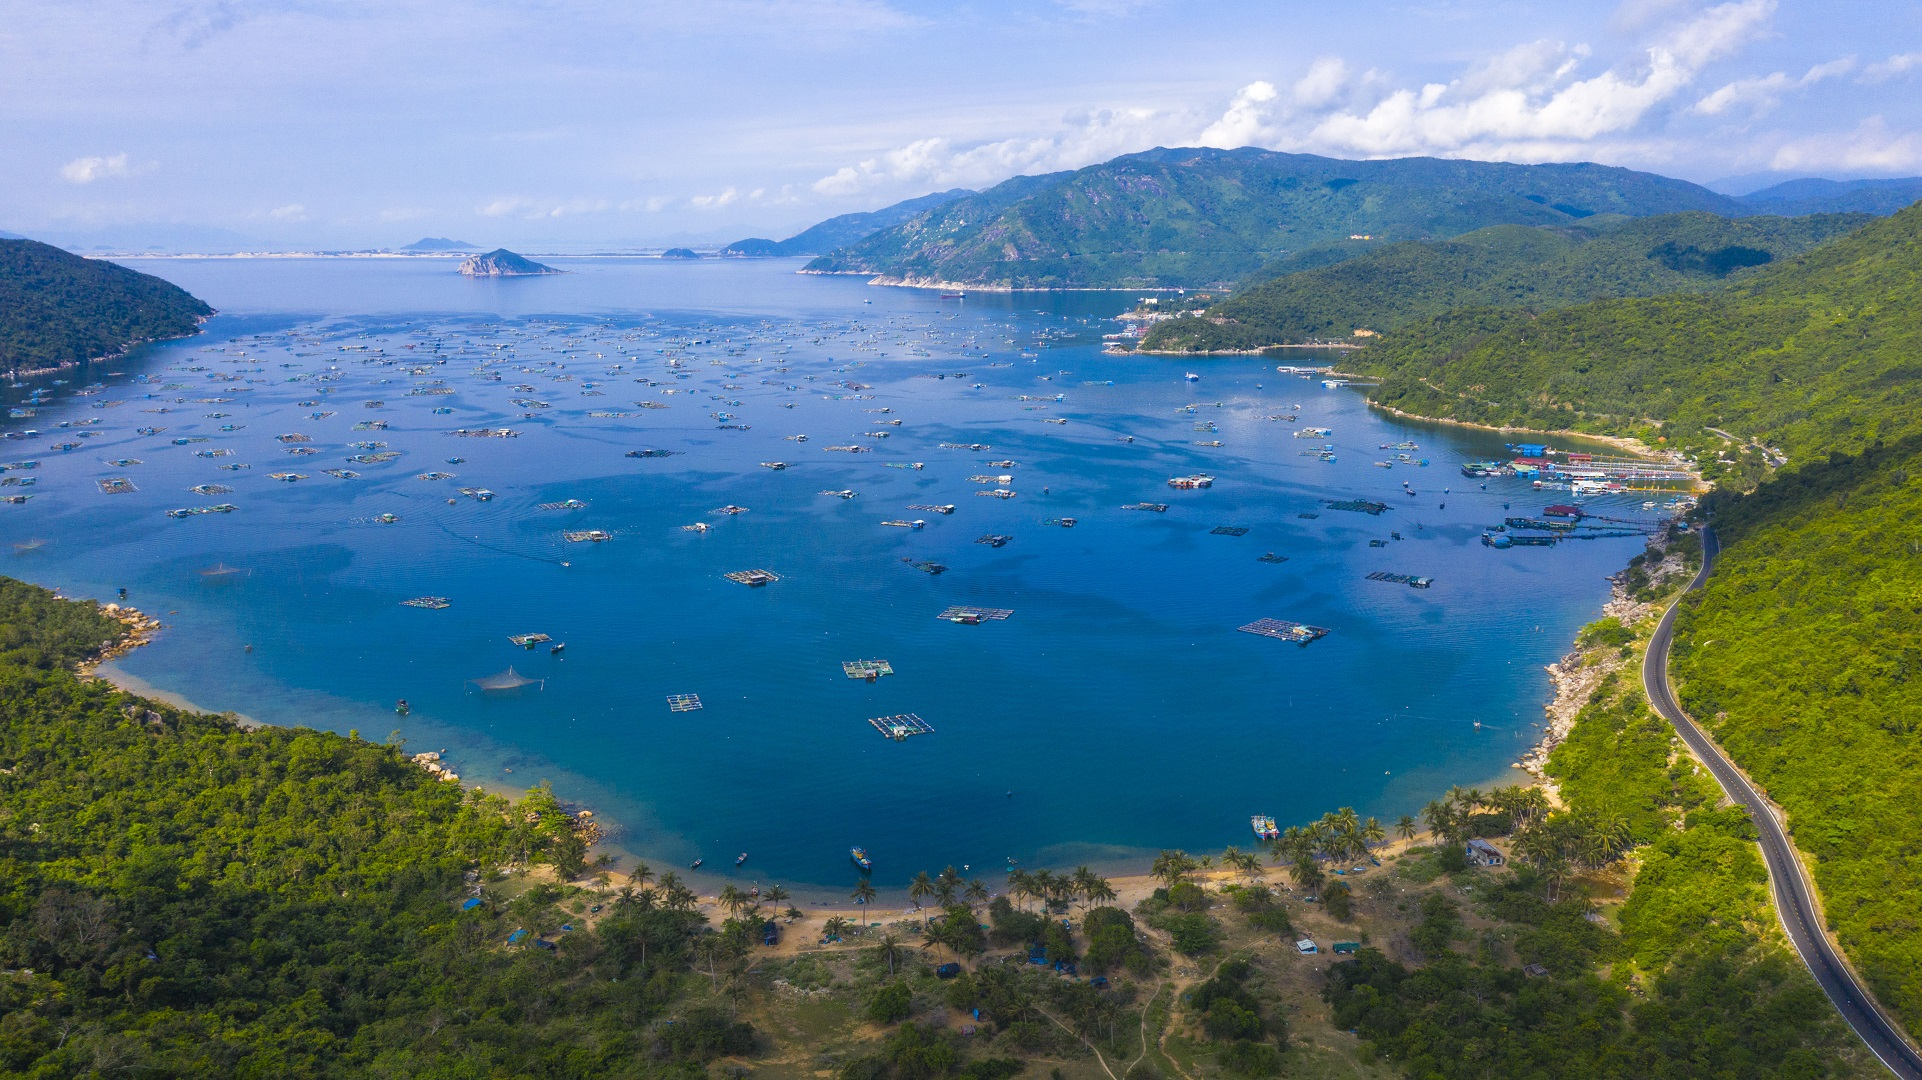 A bird's eye view photo shows aquatic farms in the central province of Phu Yen's Vung Ro Bay. Photo: Quang Dinh / Tuoi Tre News